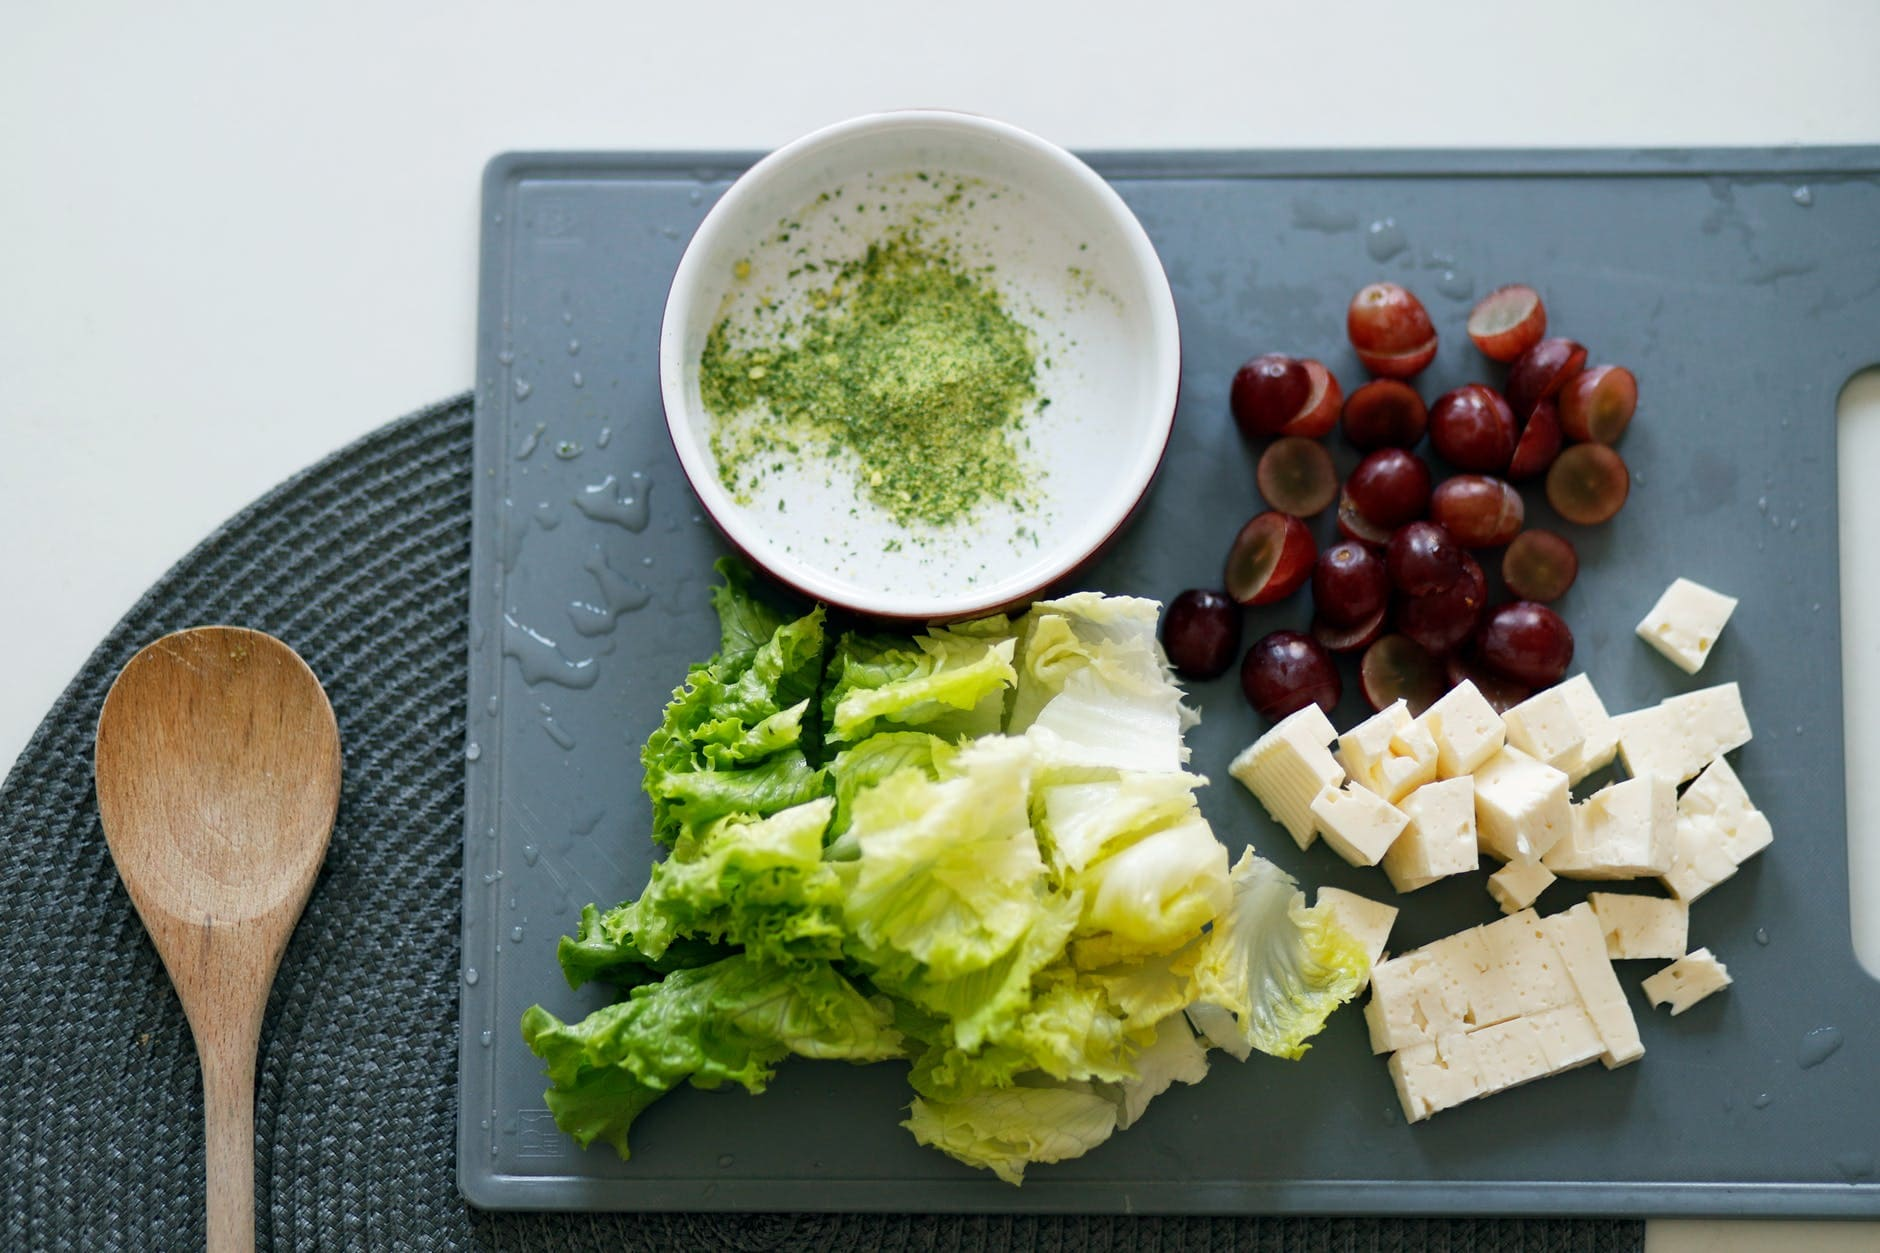 Easy and delicious Parmesan cheese salad